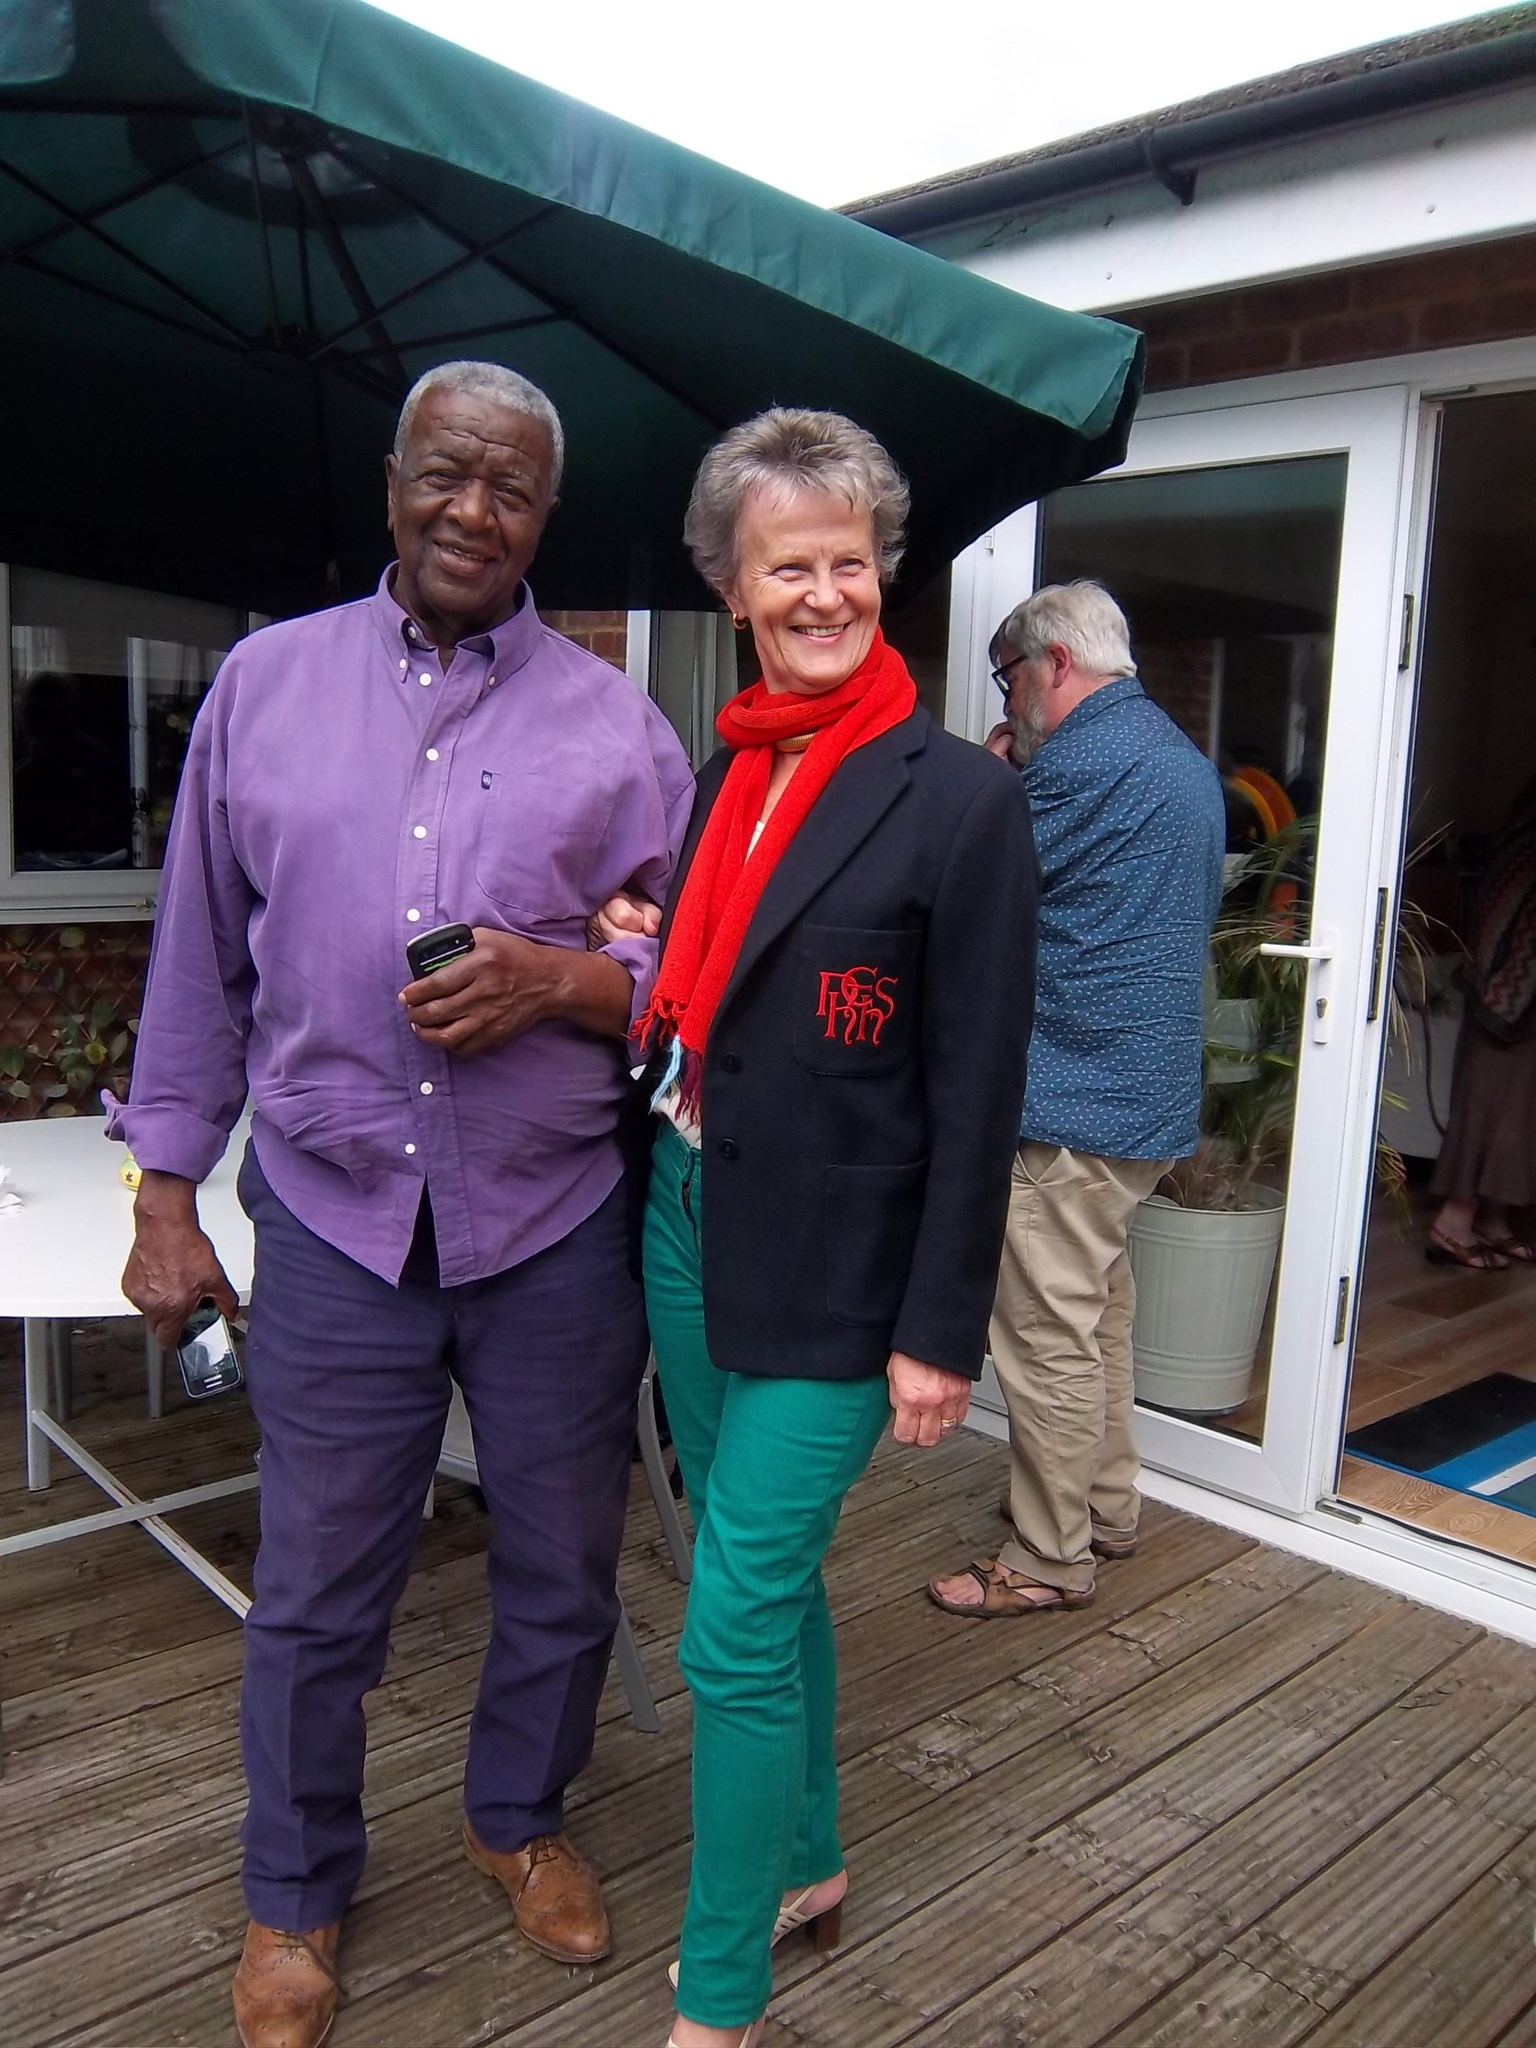 Hilary and Milton at NHEHS Golden Reunion in 2014, added by Jan Scott